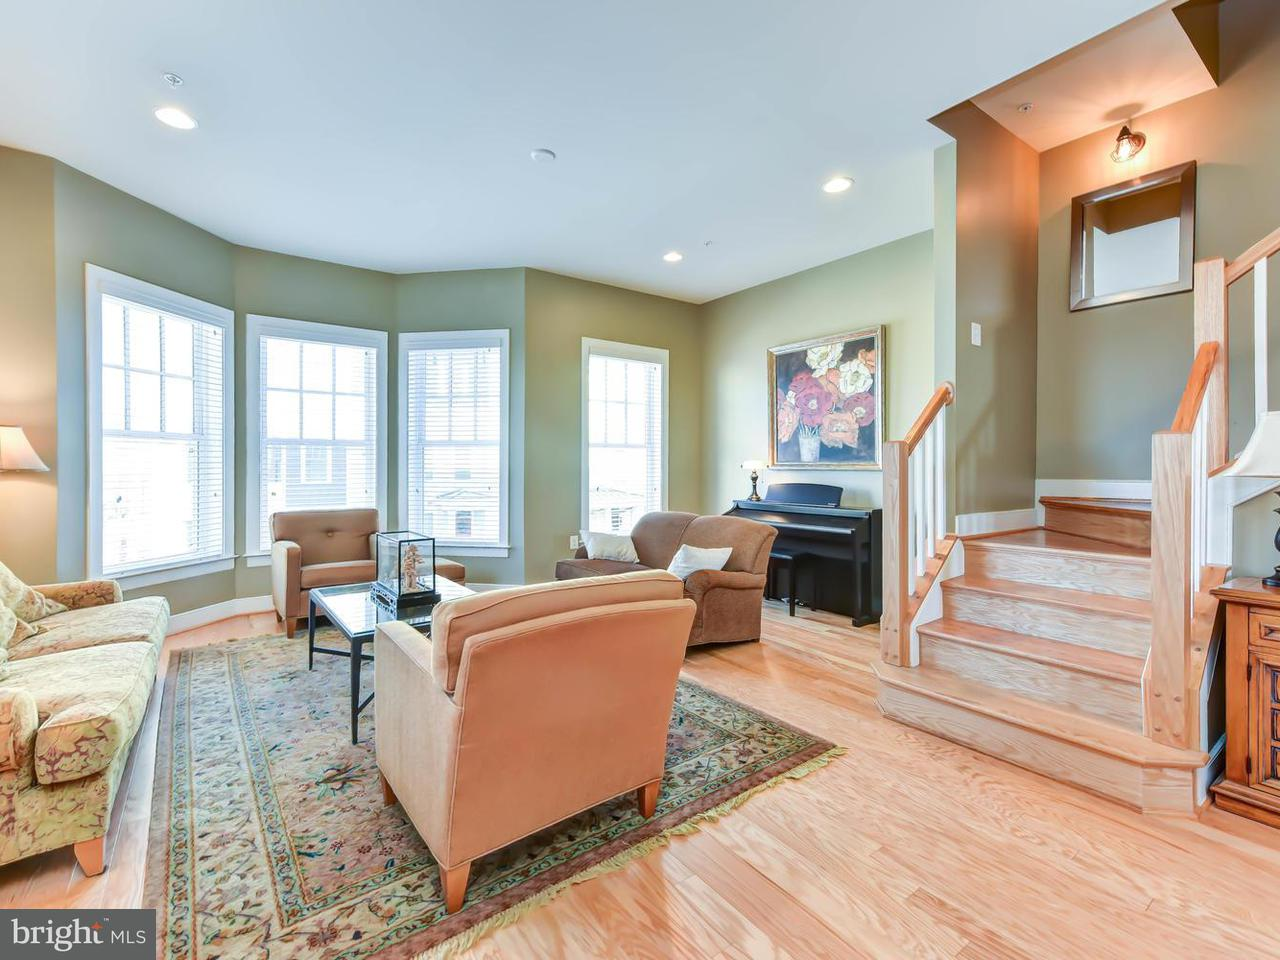 Additional photo for property listing at 601 E ALEXANDRIA Avenue 601 E ALEXANDRIA Avenue Alexandria, Virginia 22301 United States